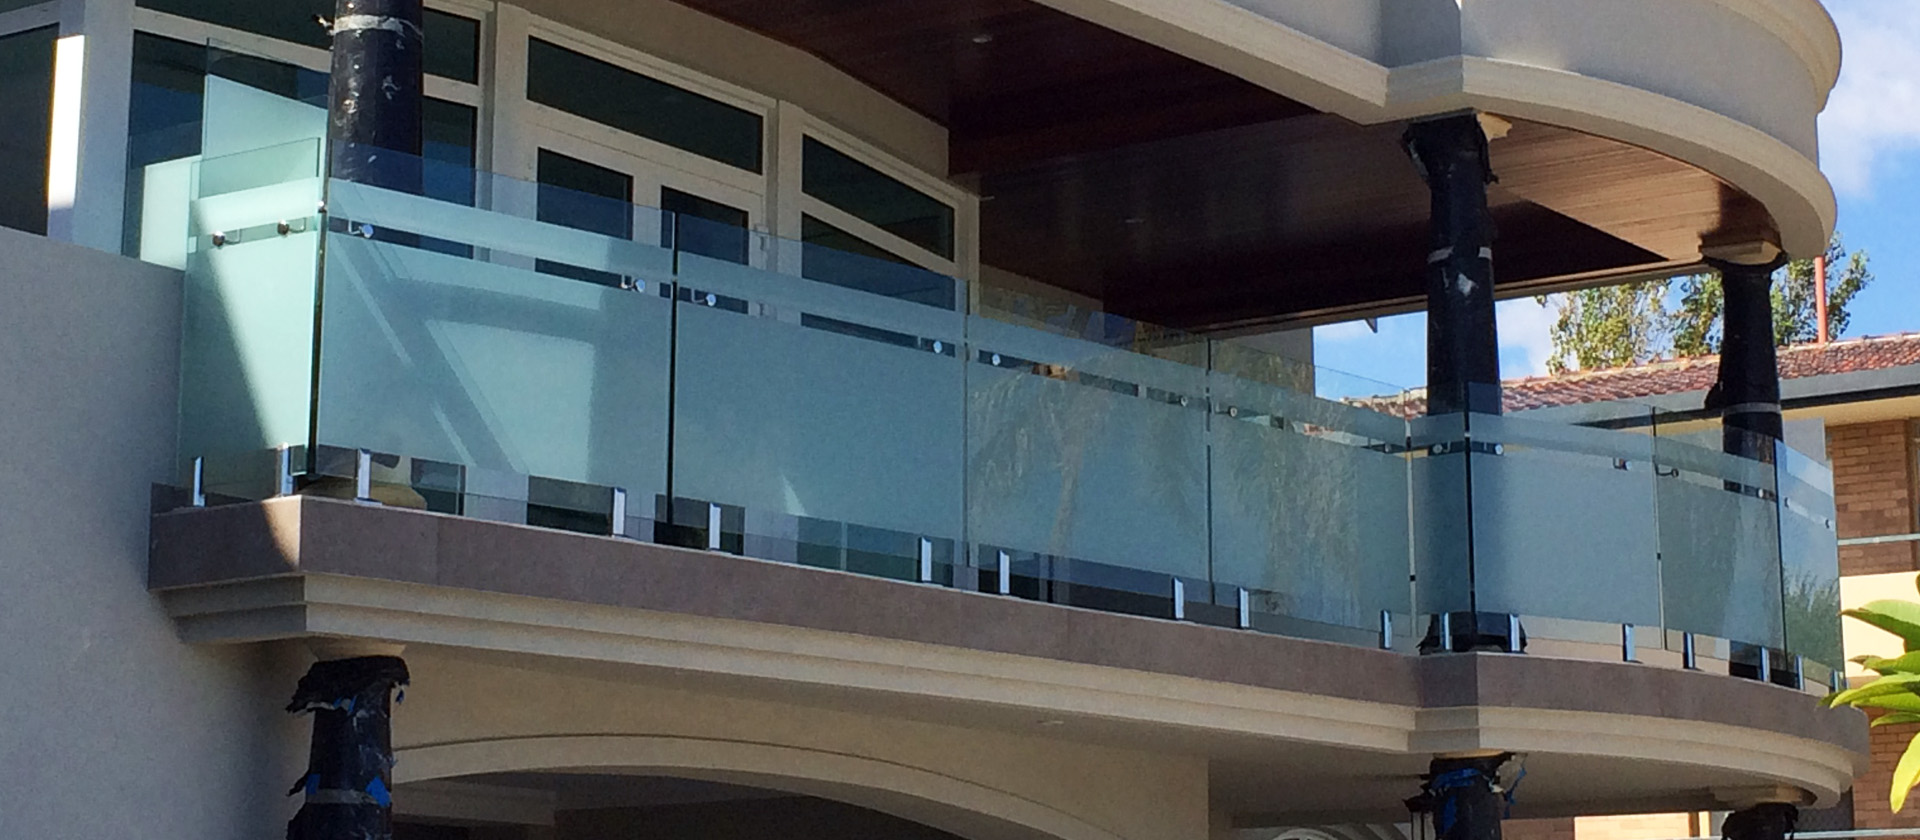 Frosted glass balustrade provides privacy